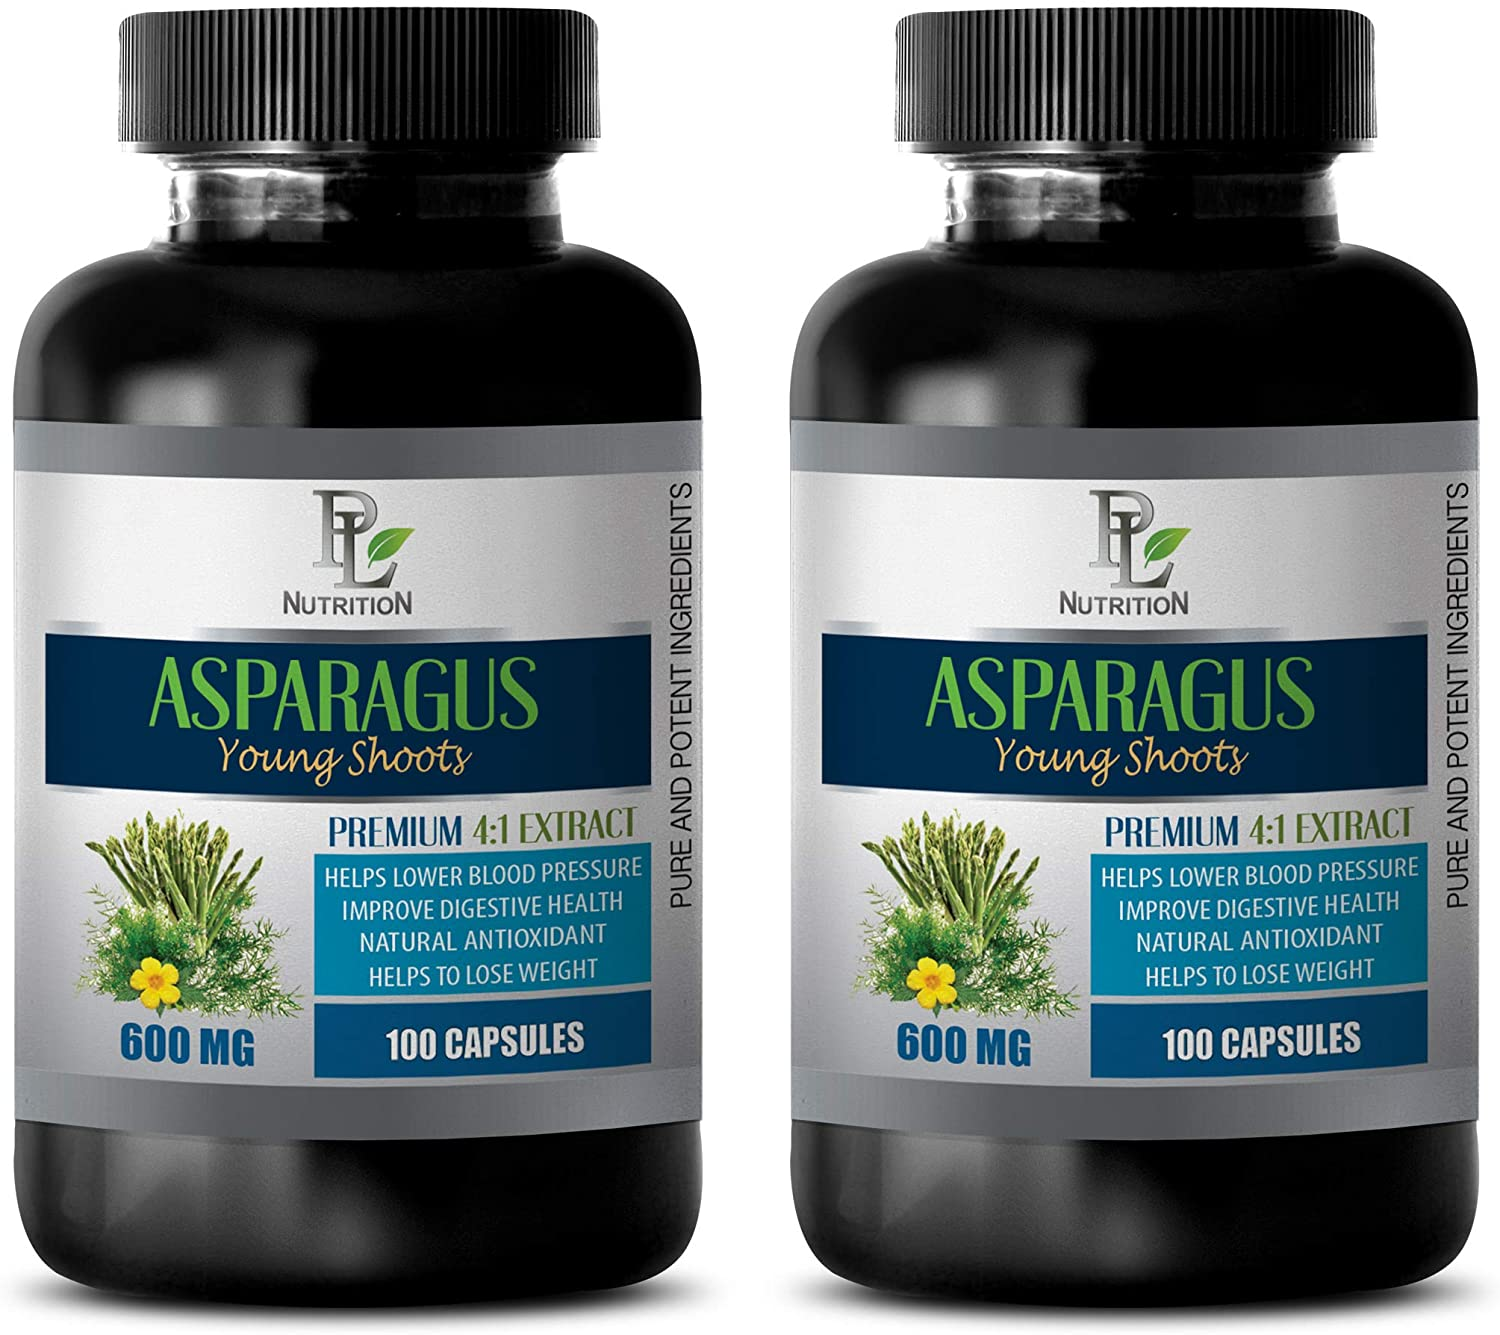 Heart Support Supplement - Asparagus Young Shoots Extract 600MG - Premium 4:1 Extract - antioxidant Pills - 2 Bottles 200 Capsules